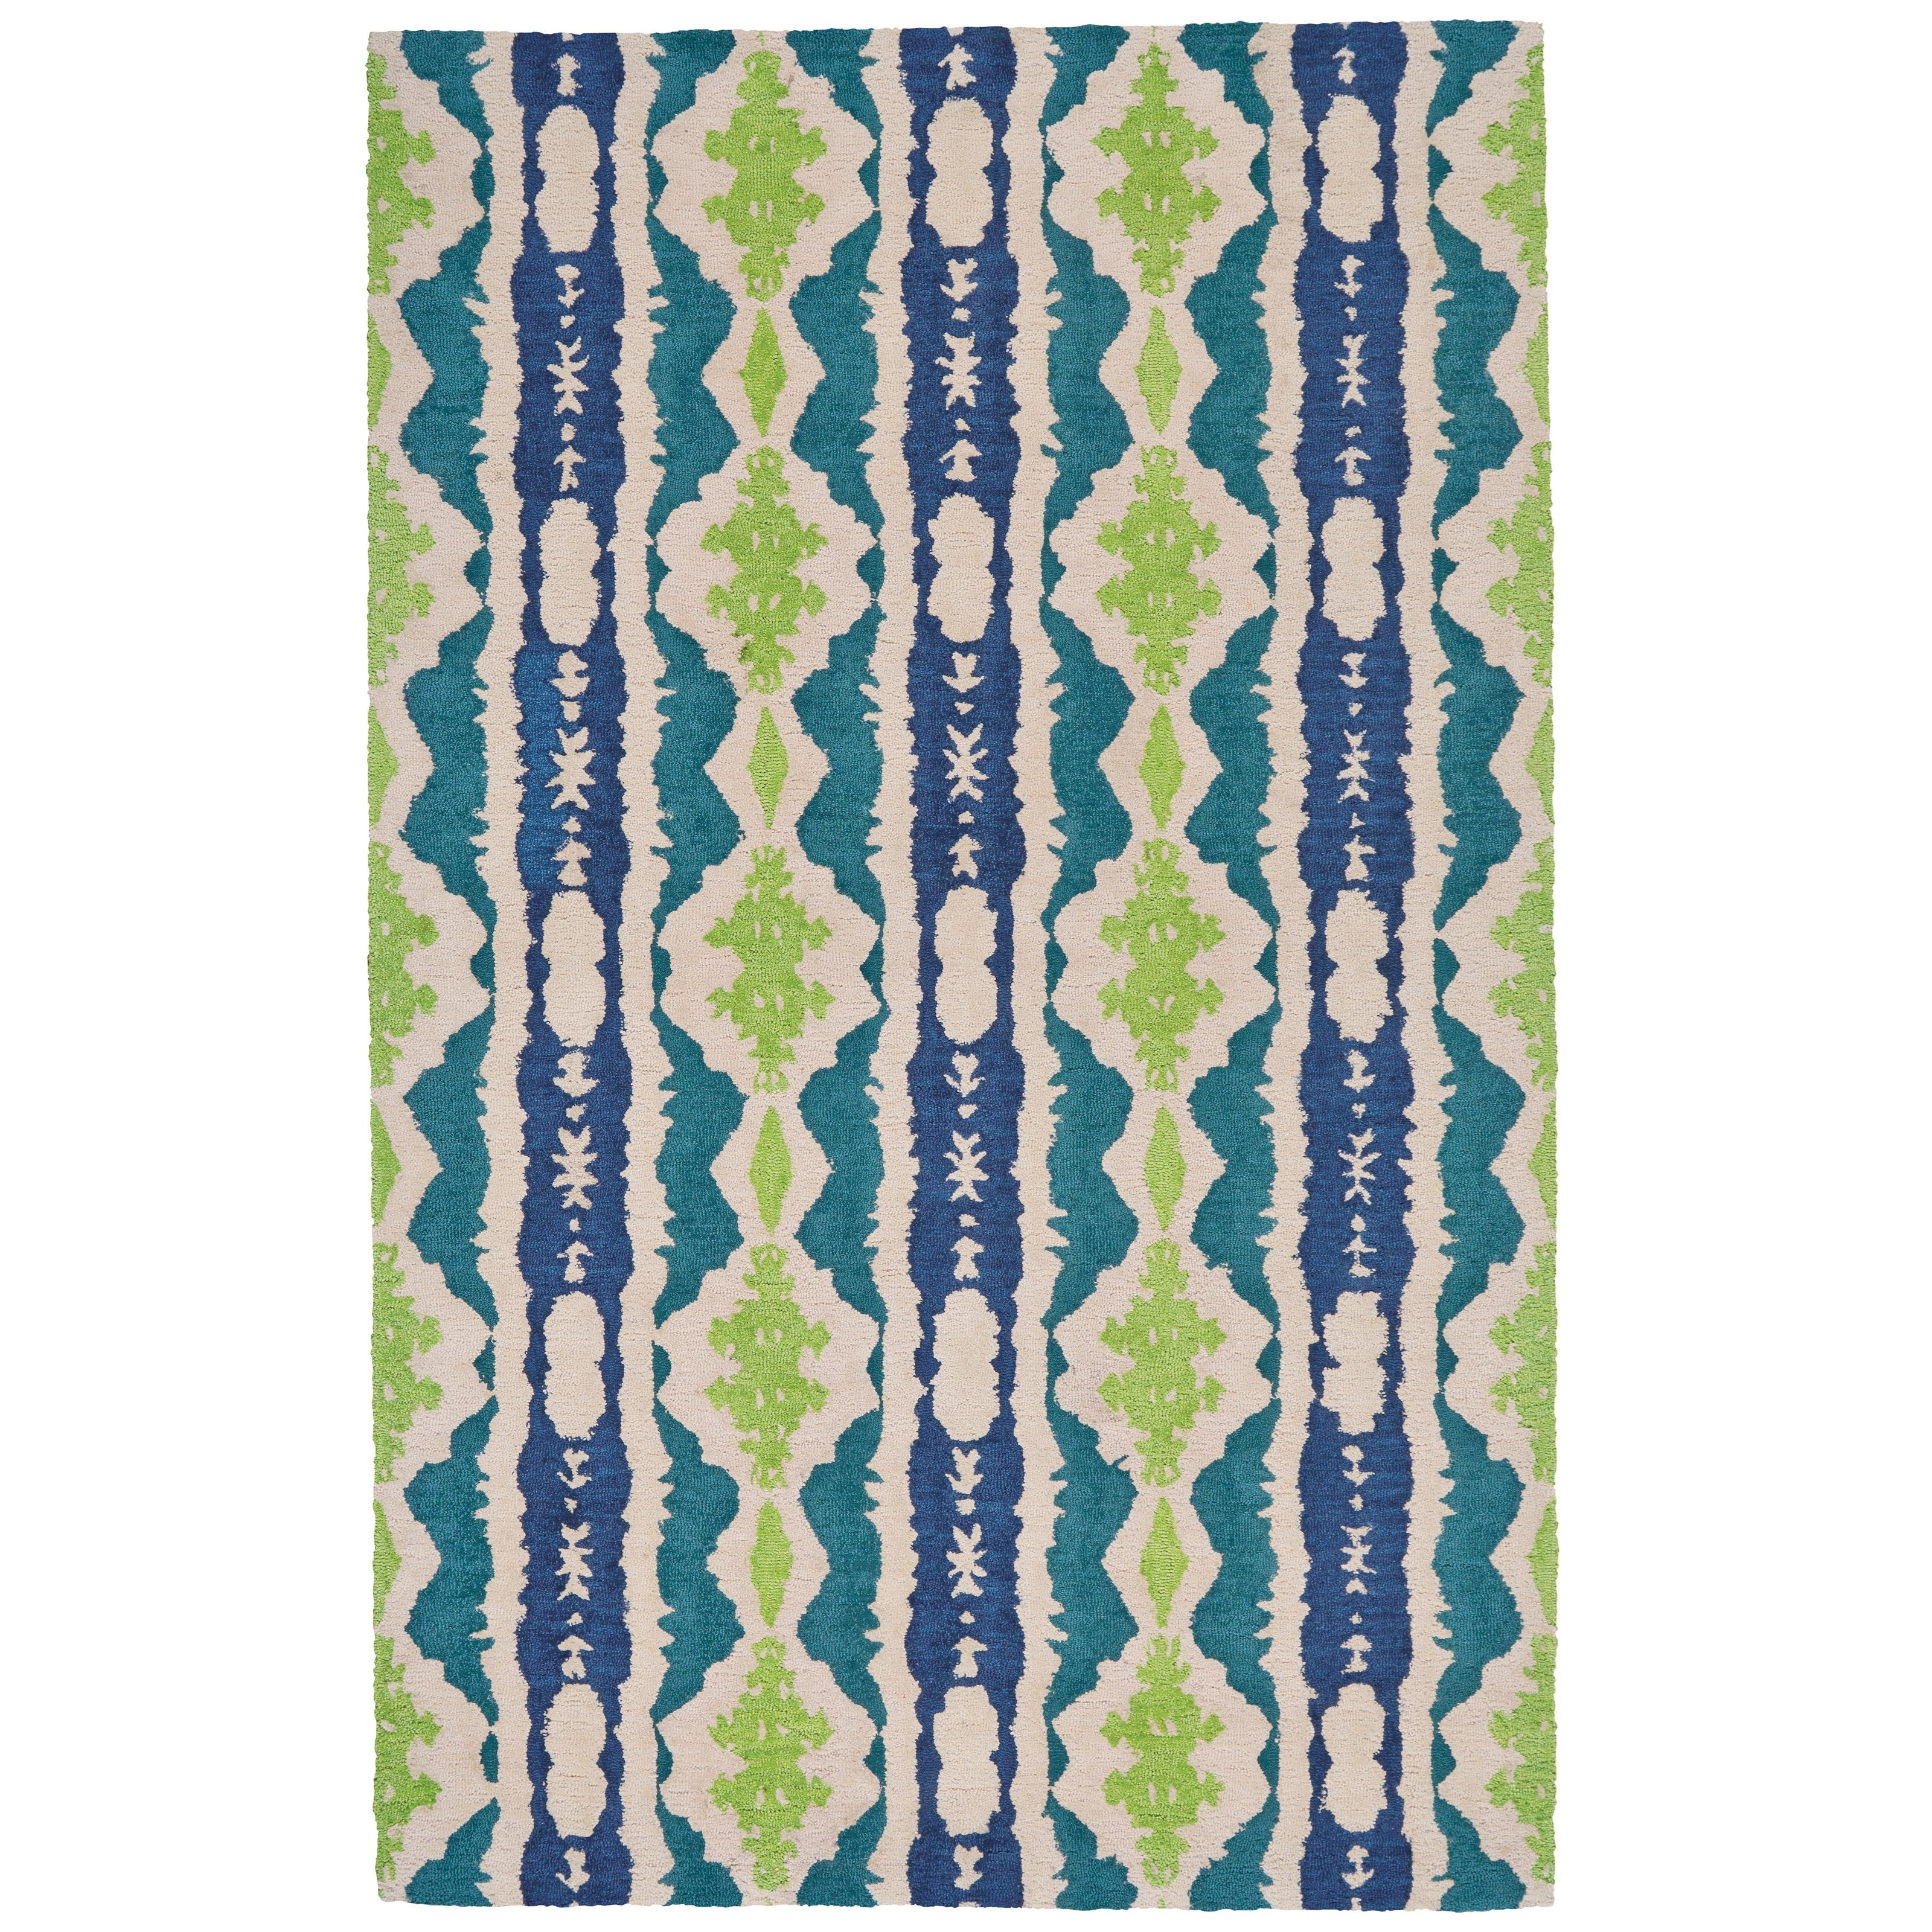 Liana Reef 12' x 15' Area Rug by Feizy Rugs at Sprintz Furniture